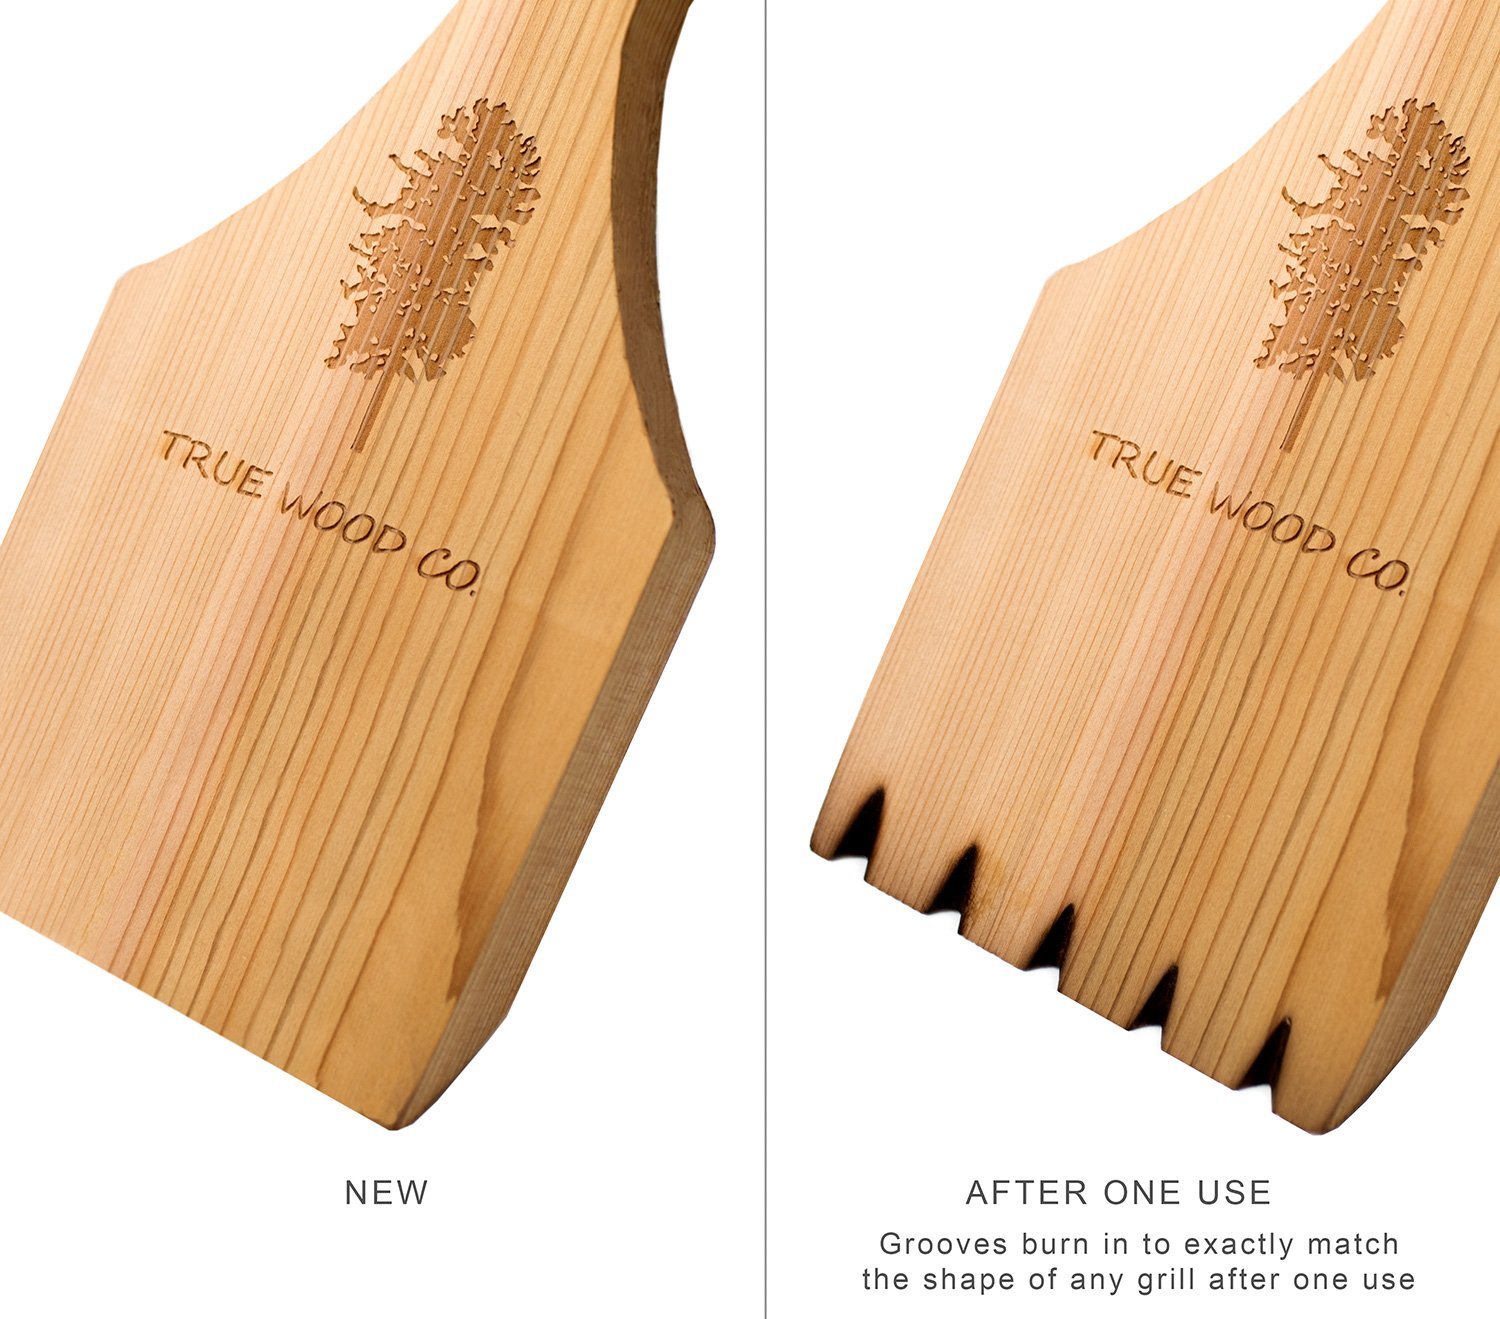 Wooden BBQ Scraper for Grill Cleaning. Safe Alternative to Wire BBQ Brushes. Extra Long Handle for Safety and Comfort. Professional Bristle Free Cleaner. West Red Cedar Wood. (21.5'') by True Wood Co. (Image #3)